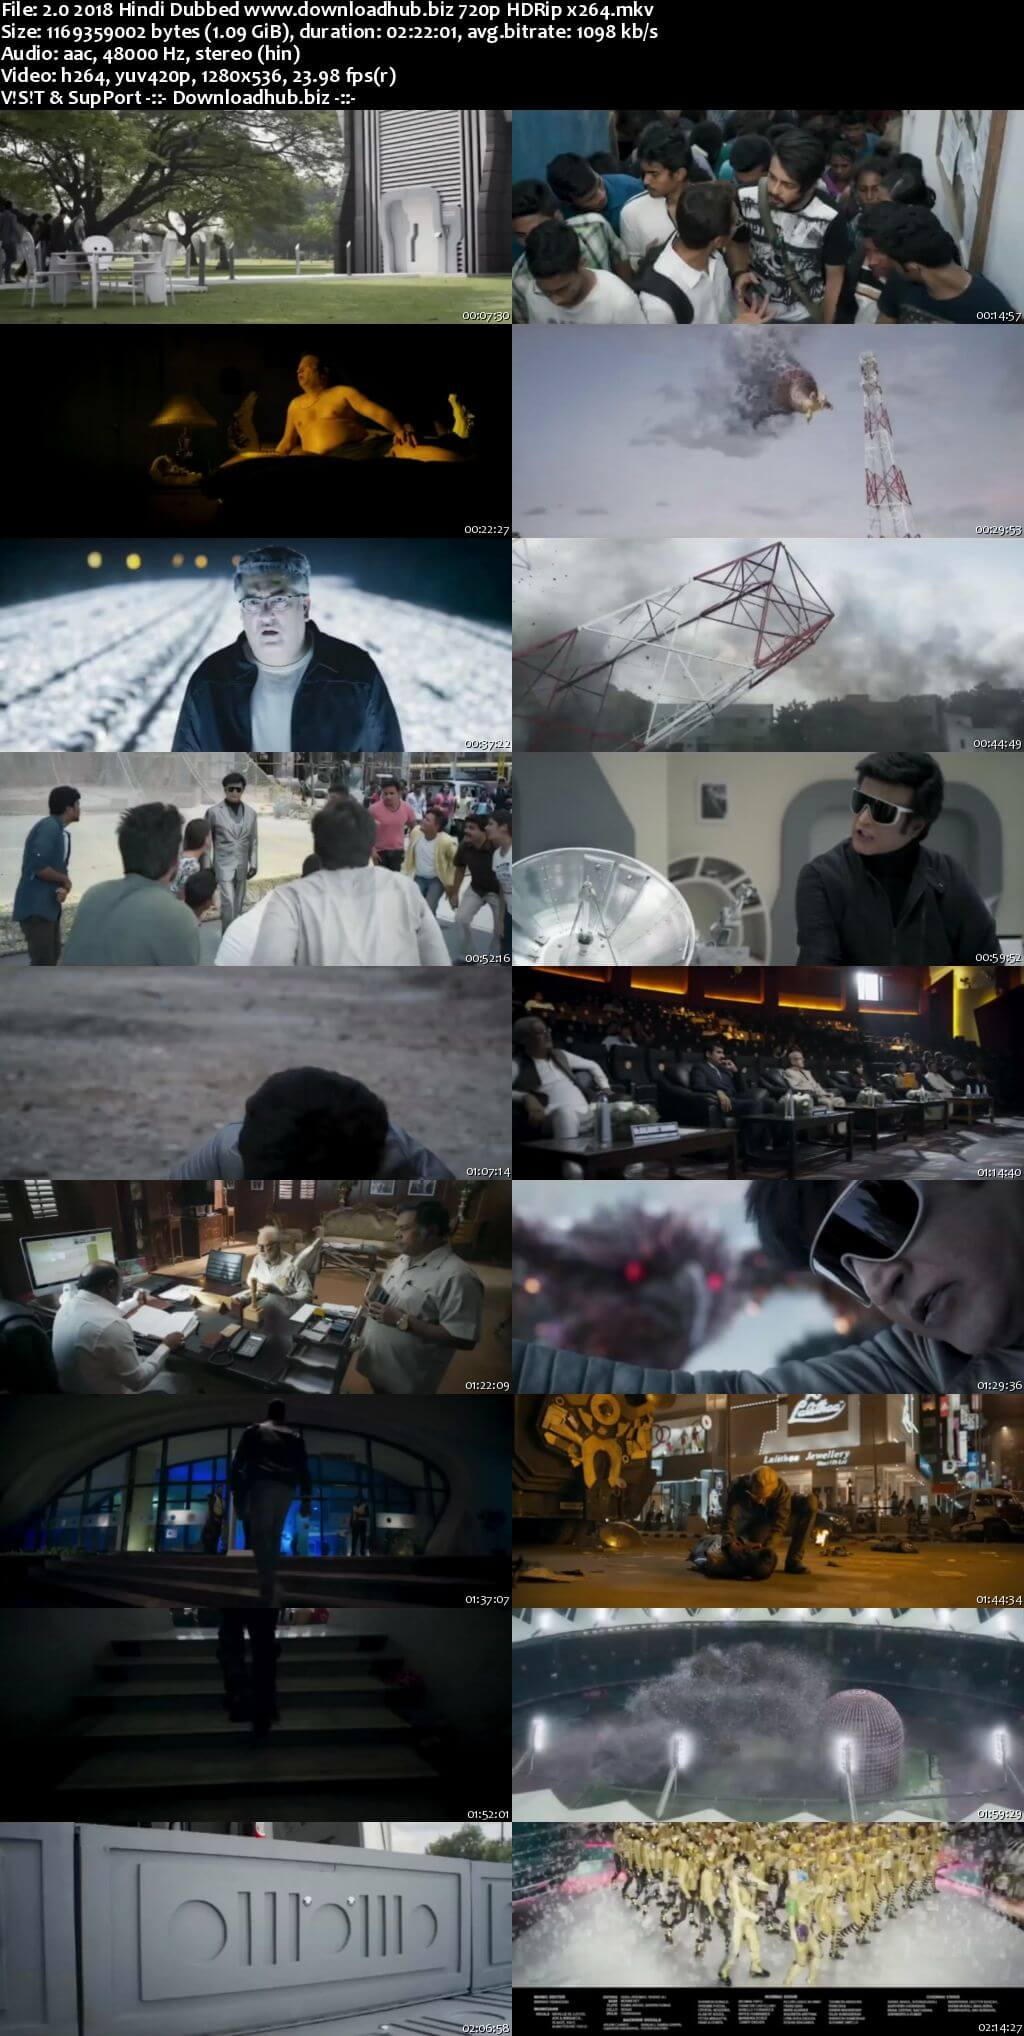 2.0 2018 Hindi Dubbed 720p HDRip x264